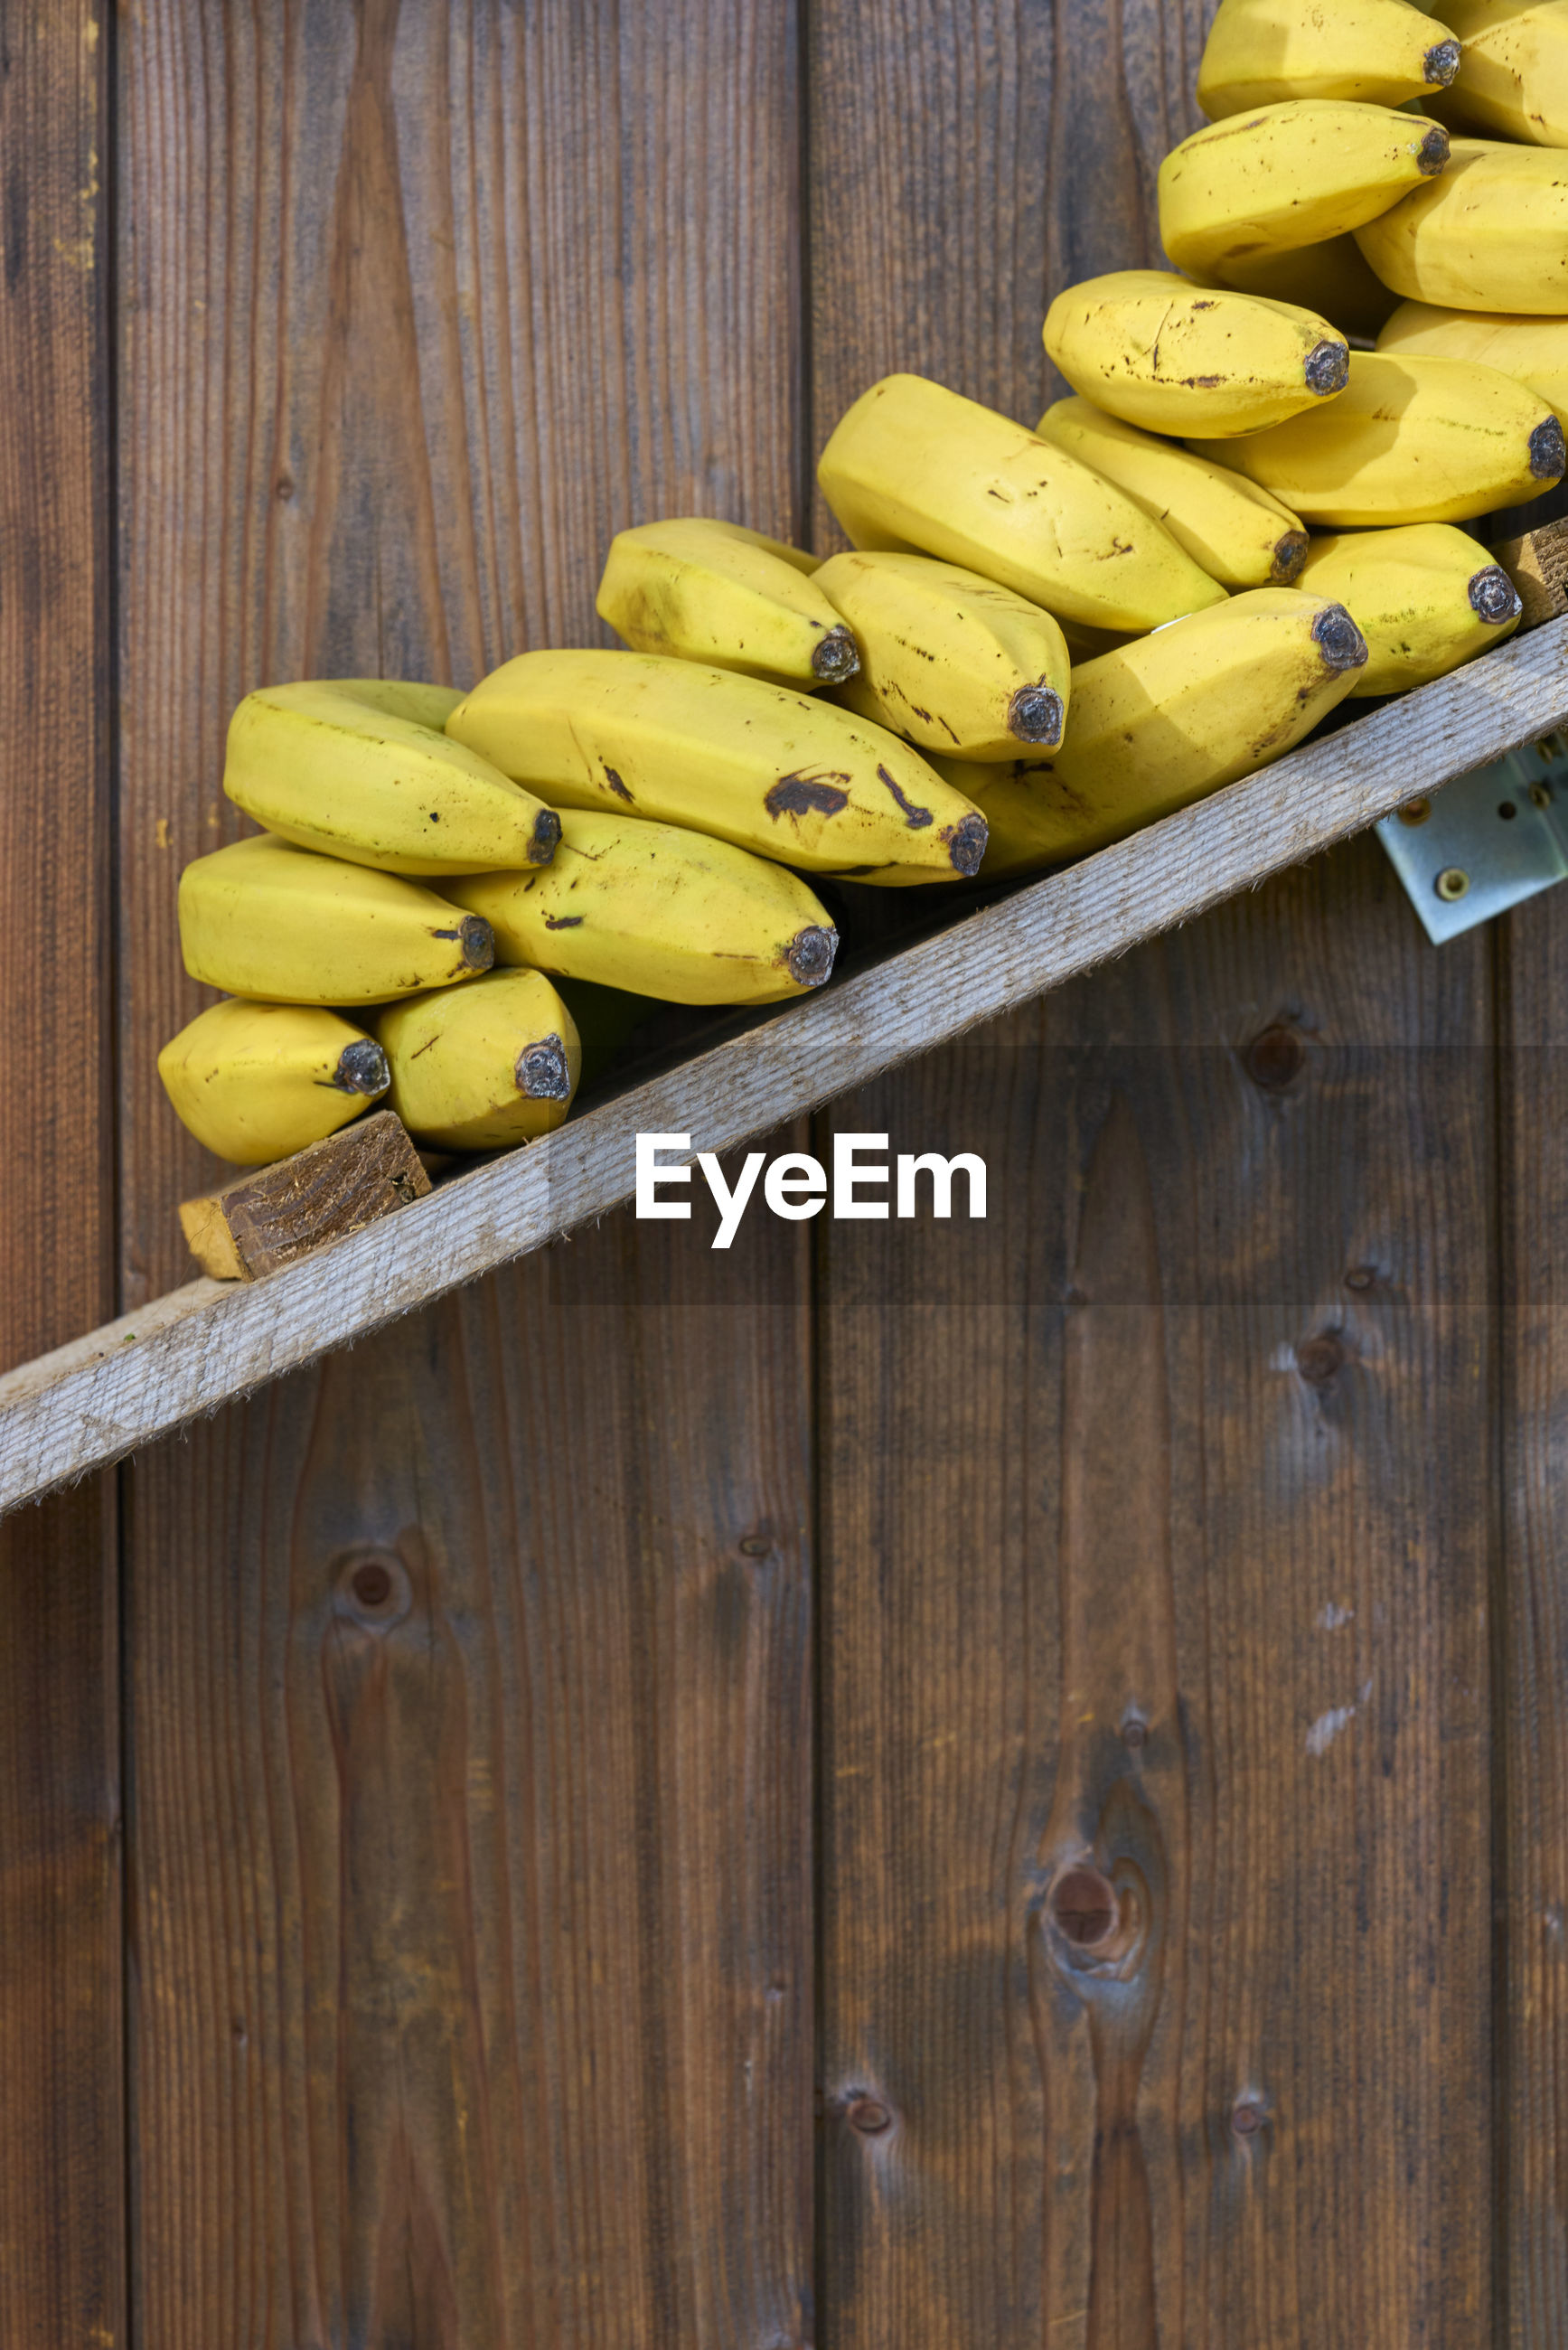 Bananas on shelf against wooden wall